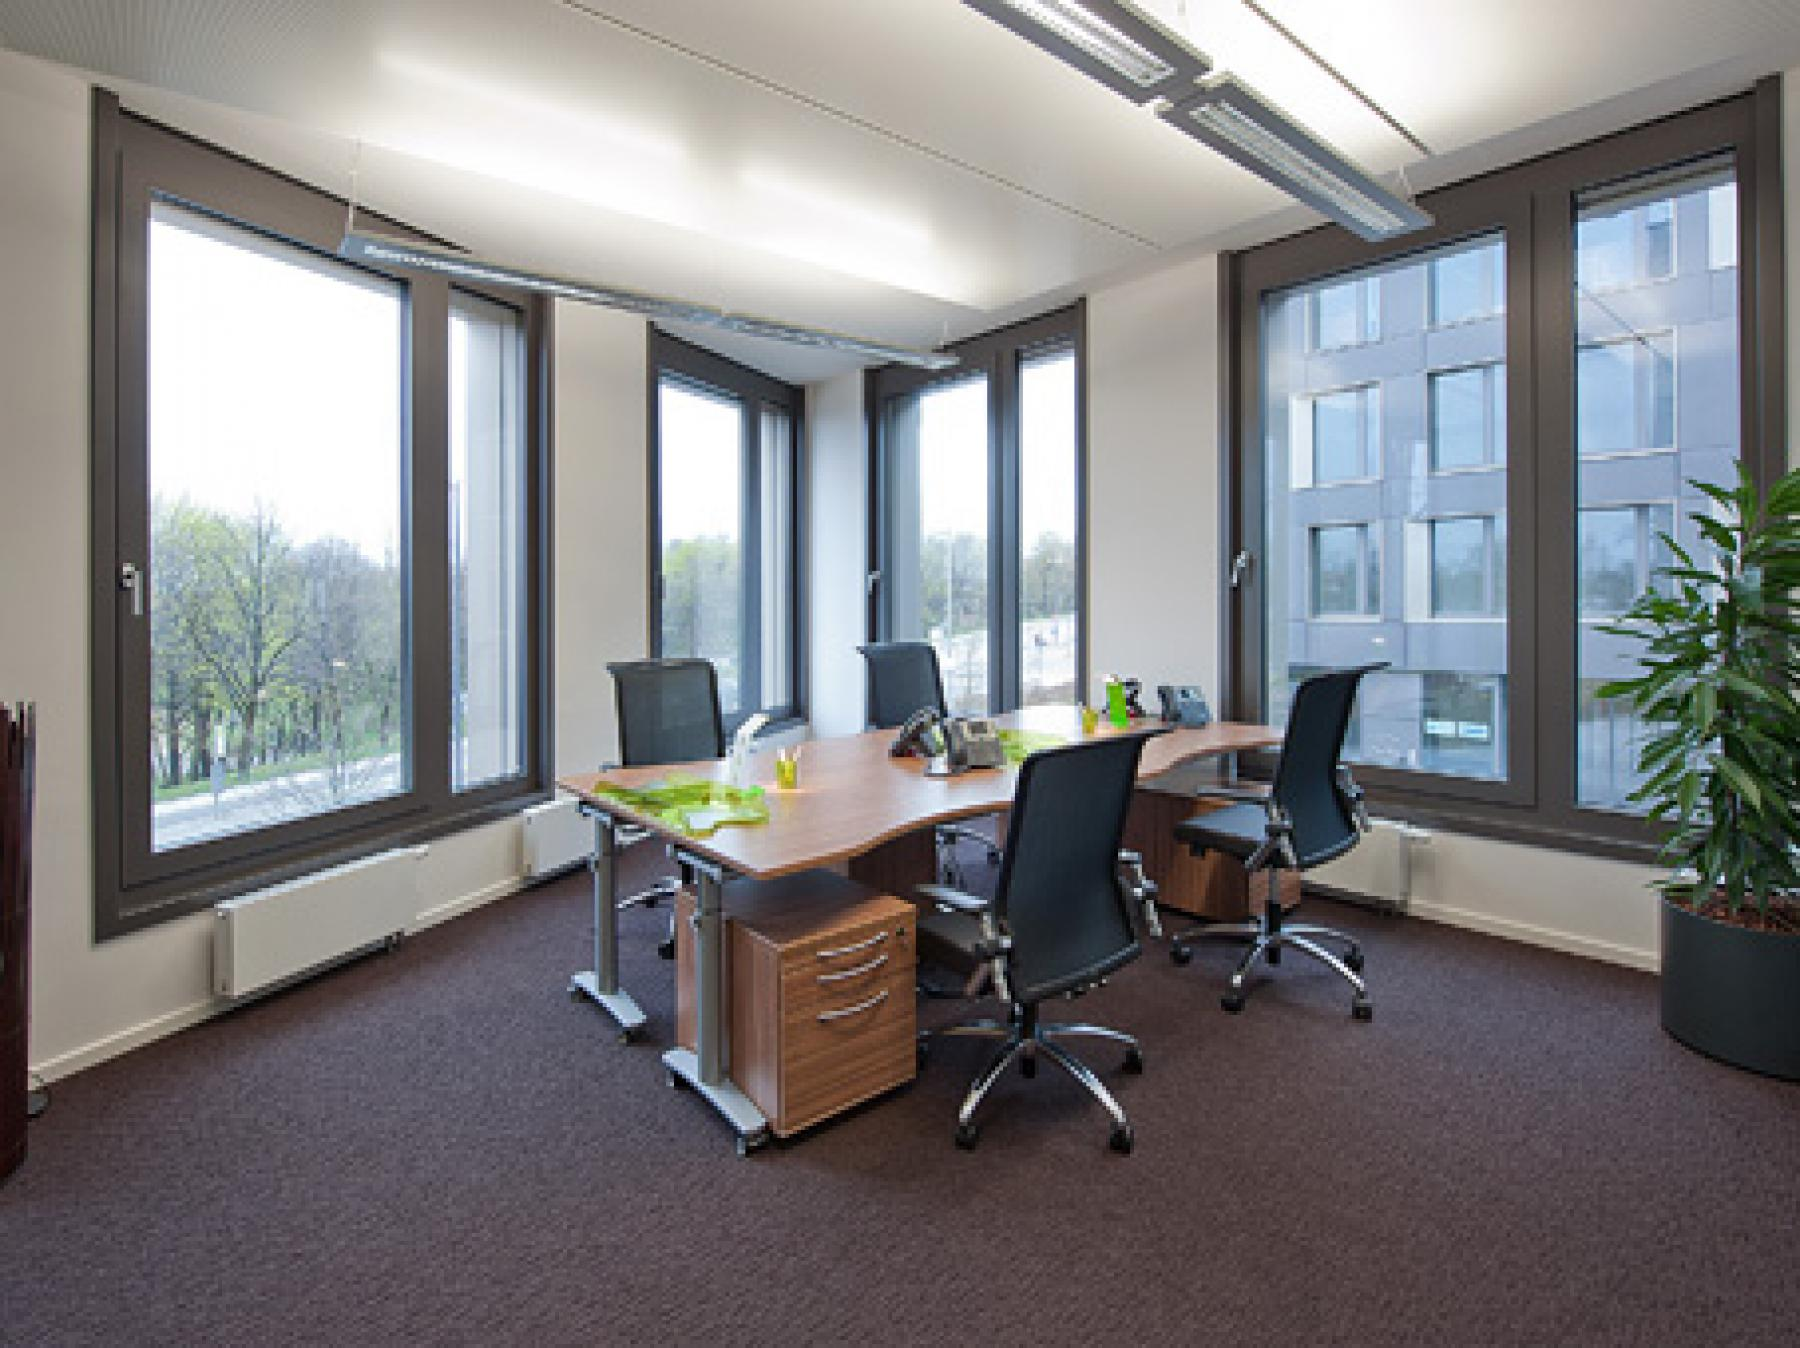 Rent office space Theresienhöhe 28, München (5)